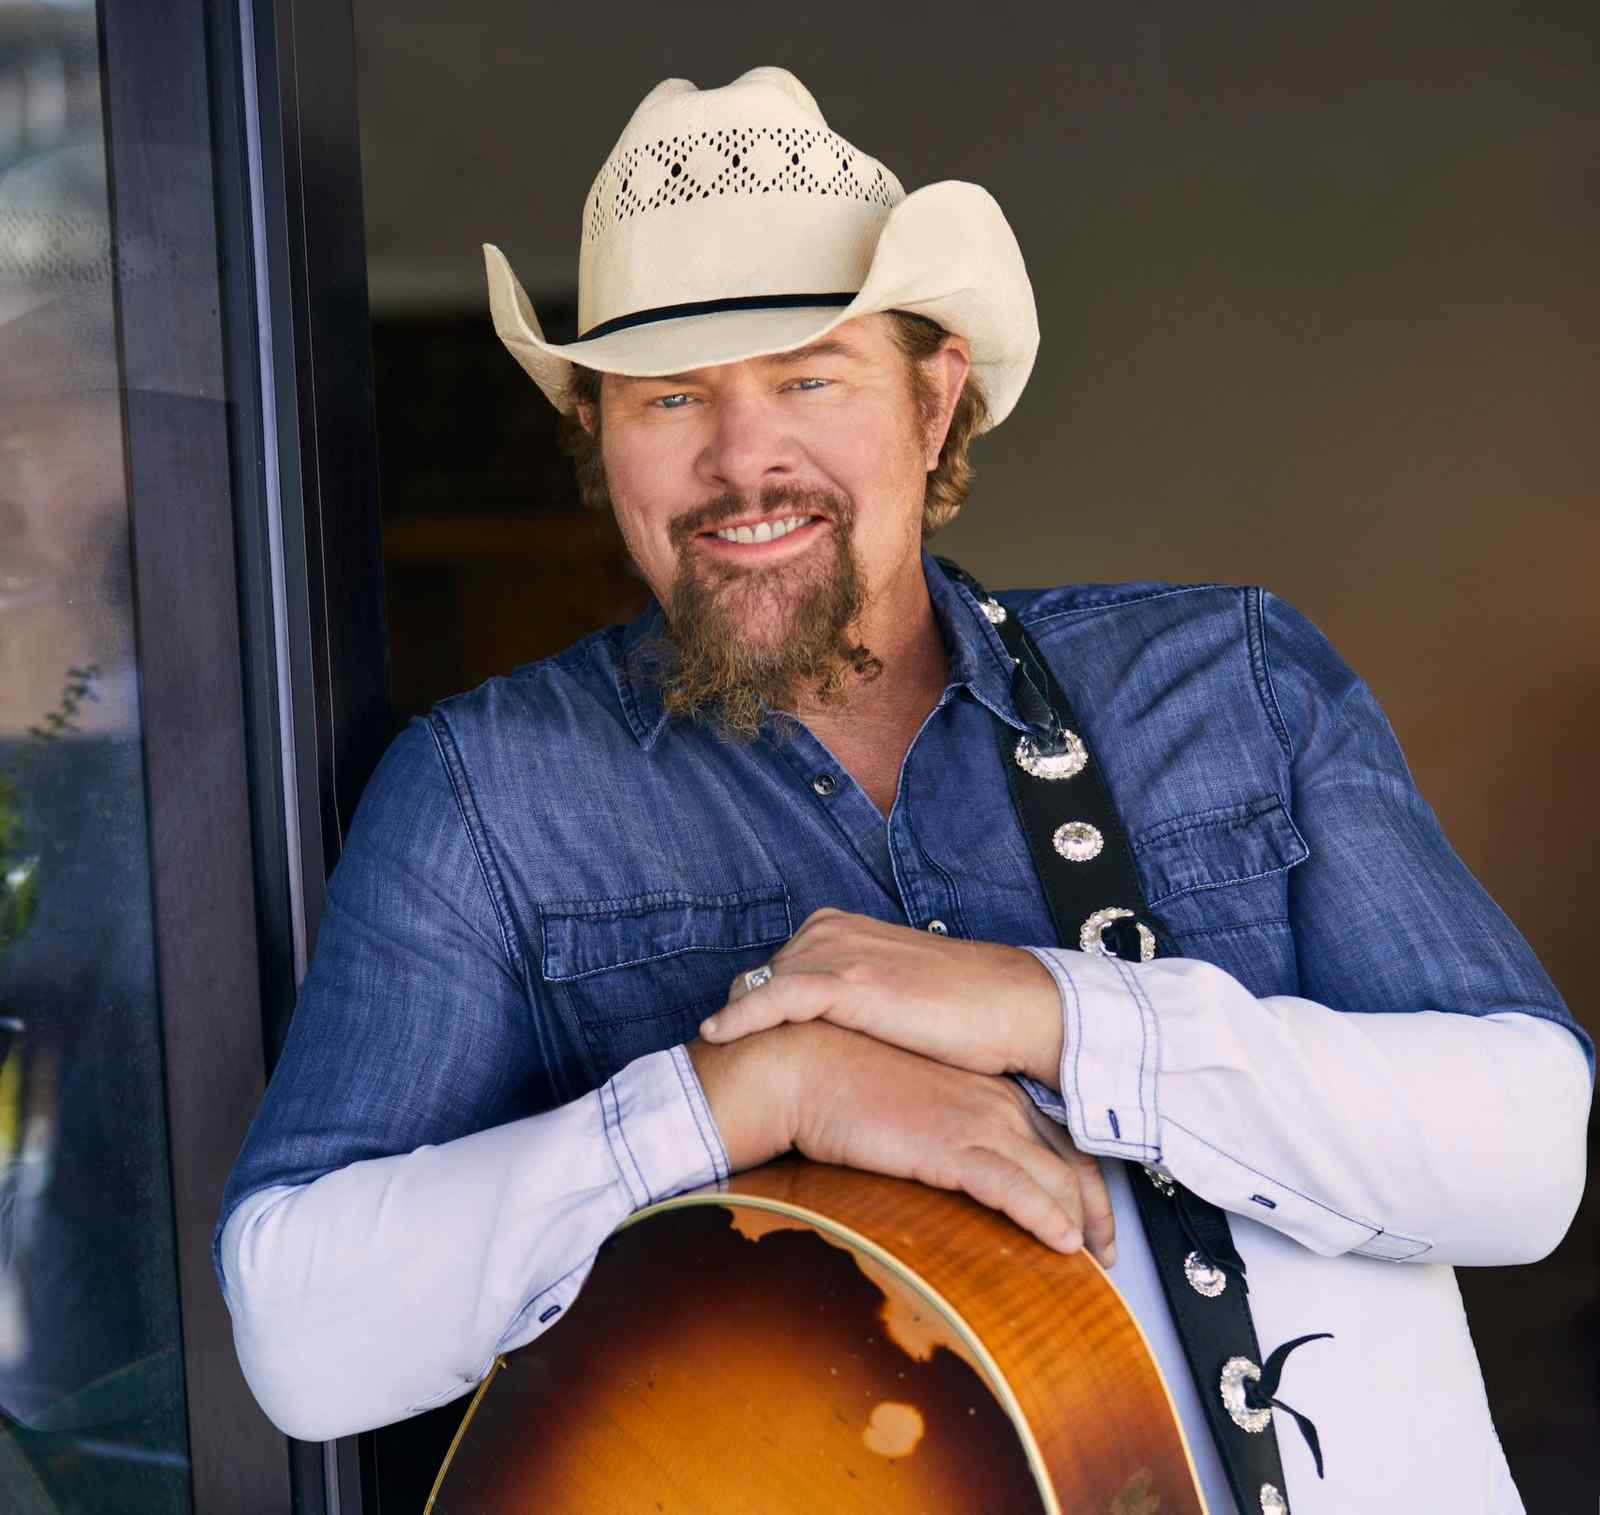 Toby Keith's New Album Peso In My Pocket Releasing Tomorrow, October 15